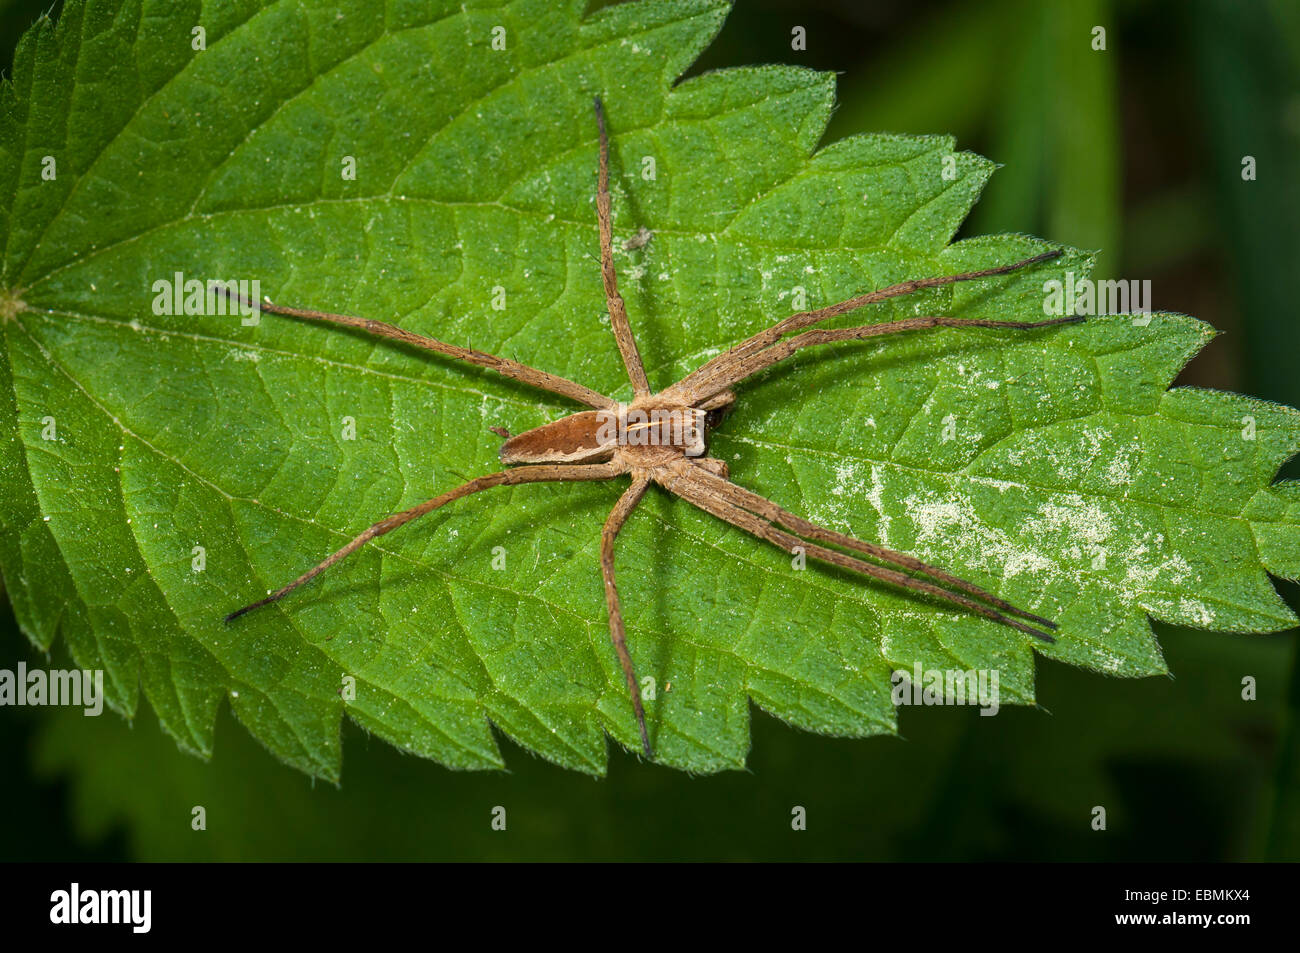 Nursery web spider species (Pisaura mirabilis) on Stinging Nettle (Urtica dioica), Mönchbruch Nature Reserve, - Stock Image